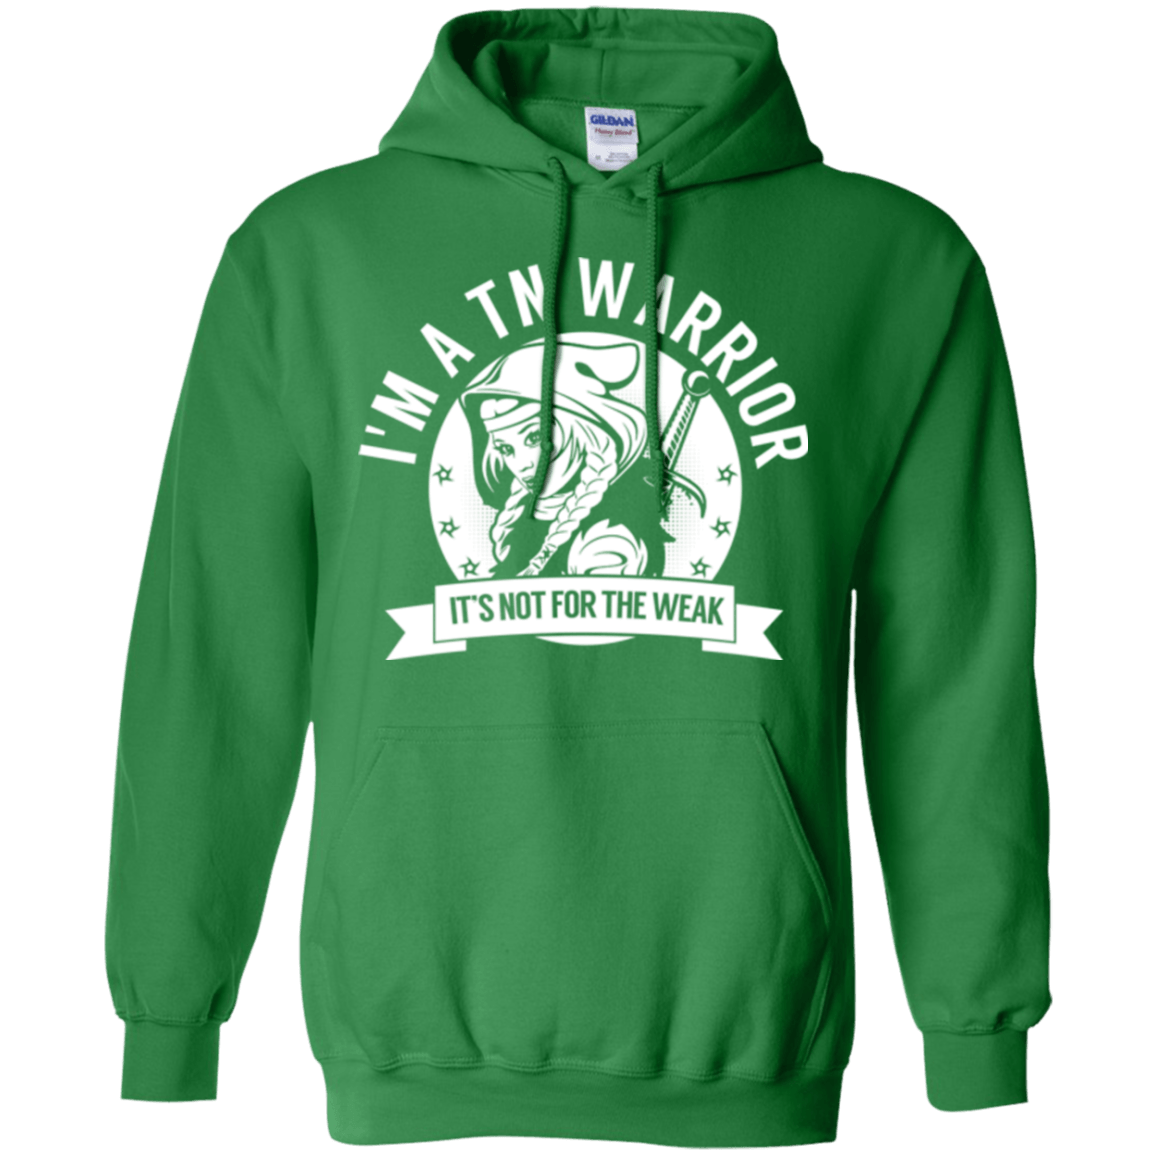 Trigeminal Neuralgia - TN Warrior Hooded Pullover Hoodie 8 oz. - The Unchargeables